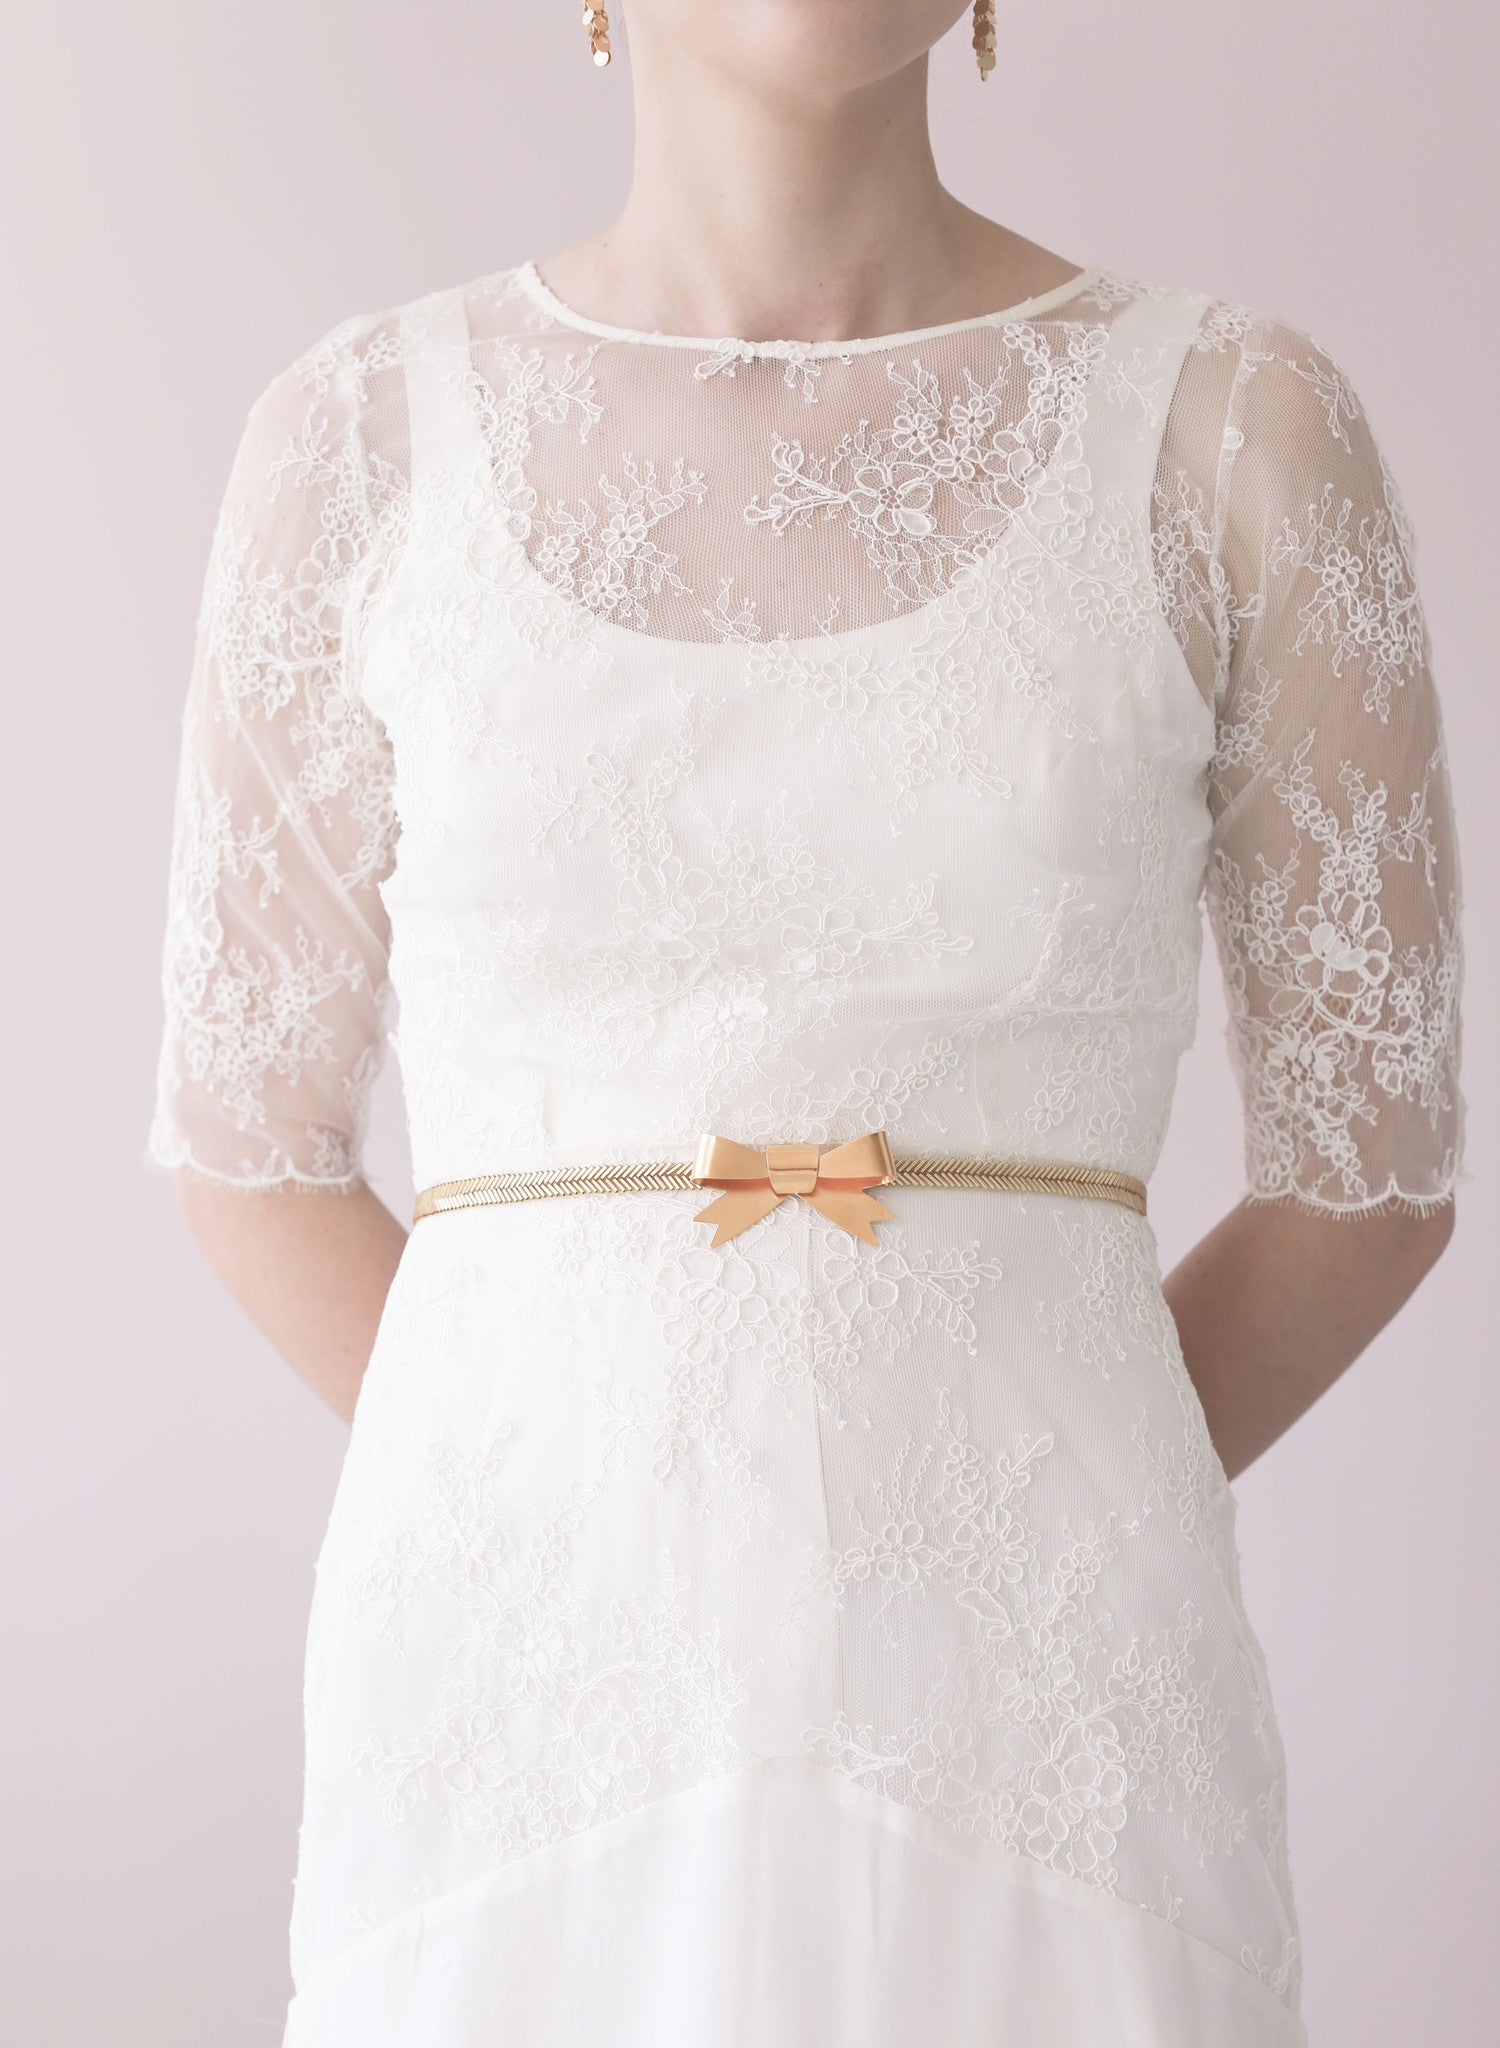 Gilded bow and beaded belt - Style # 448